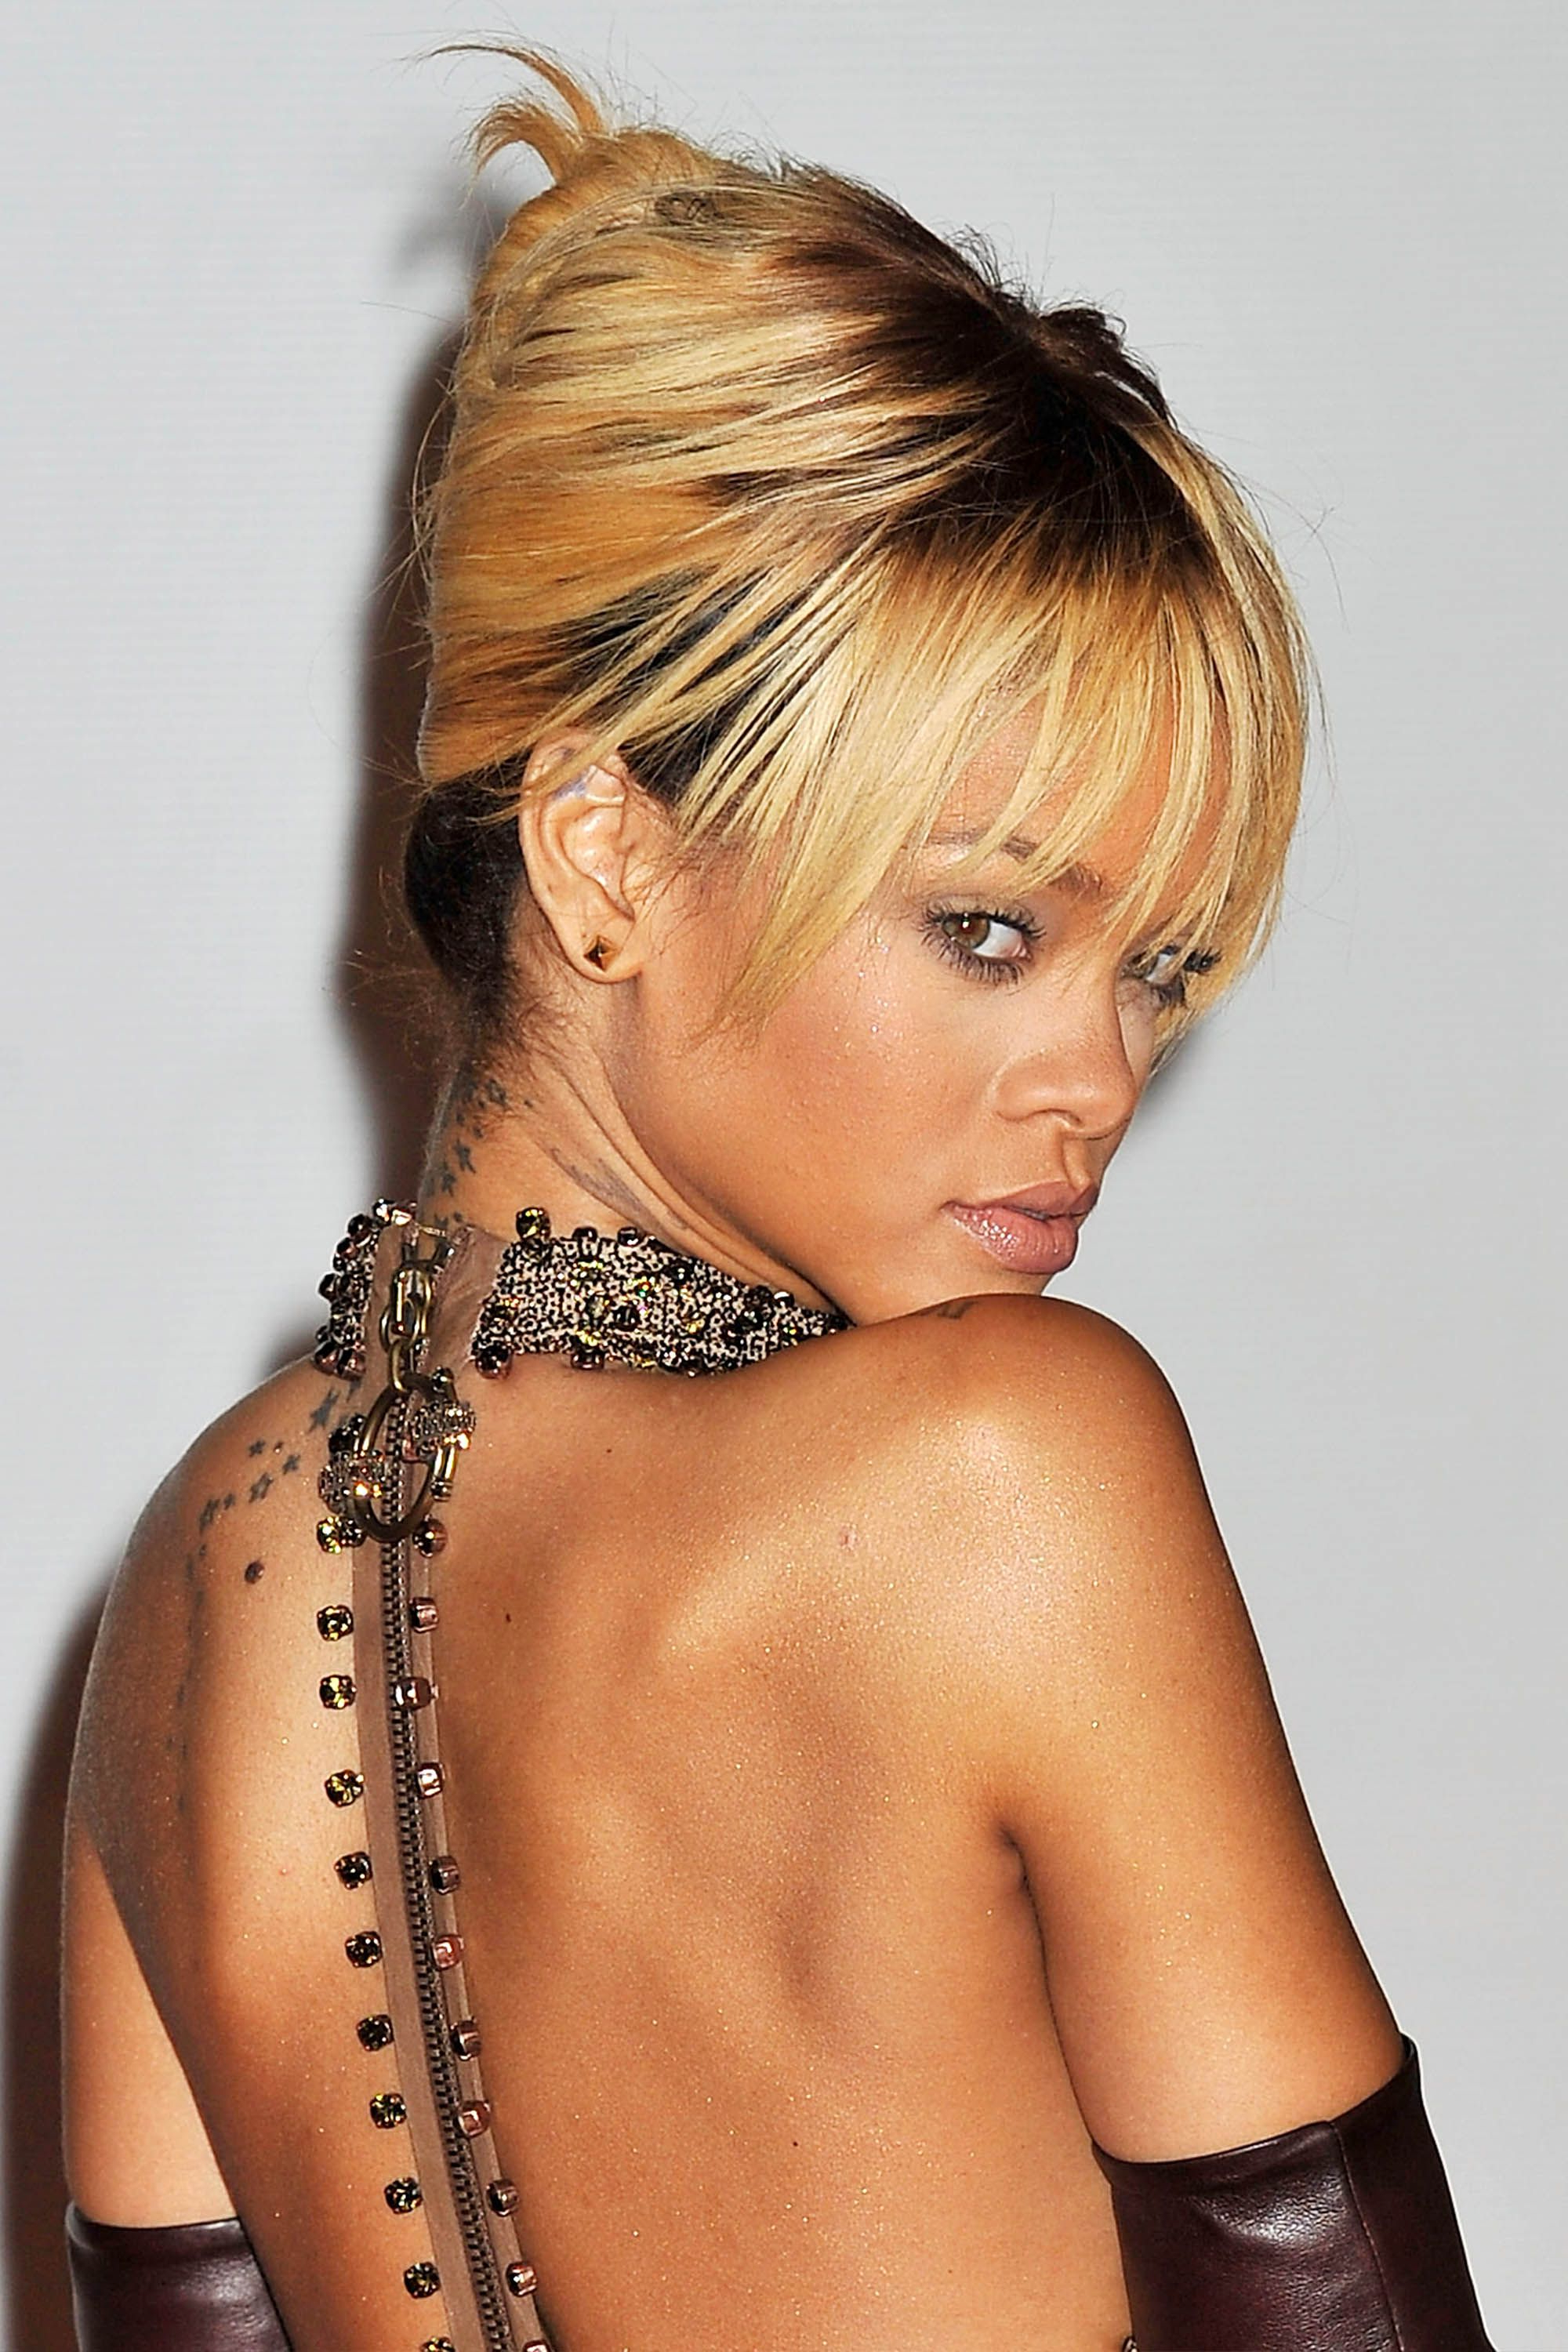 50 Best Rihanna Hairstyles – Our Favorite Rihanna Hair Looks For Well Known Gold Toned Skull Cap Braided Hairstyles (View 17 of 20)